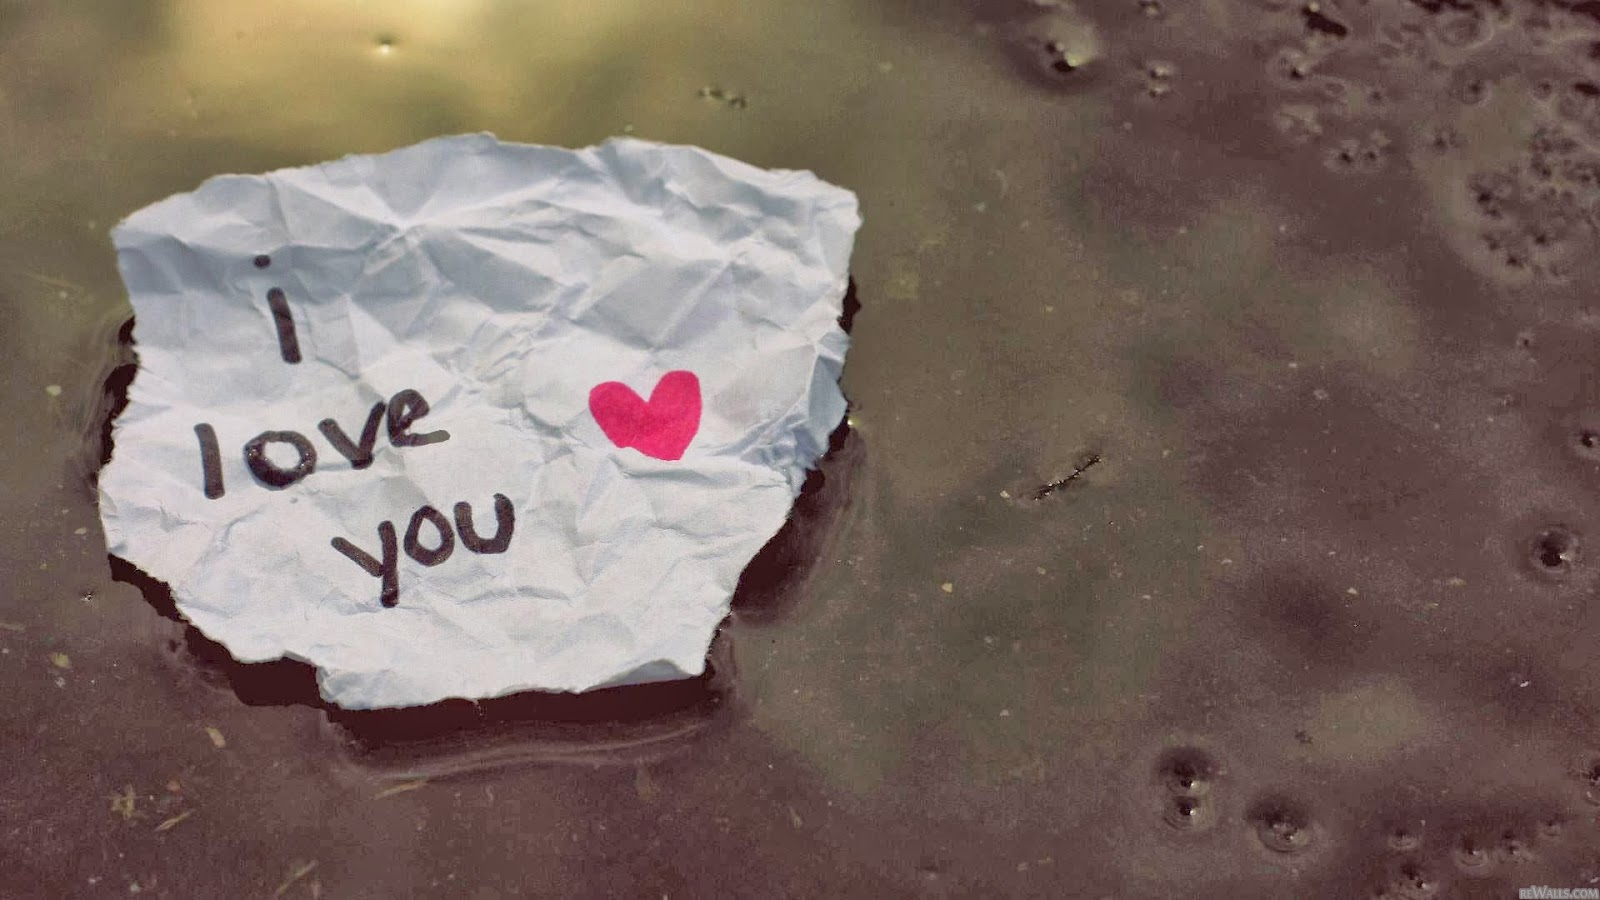 I Love You Boy Wallpaper Hd : I love you Text Pictures for Facebook HD Images Free Download PIXHOME